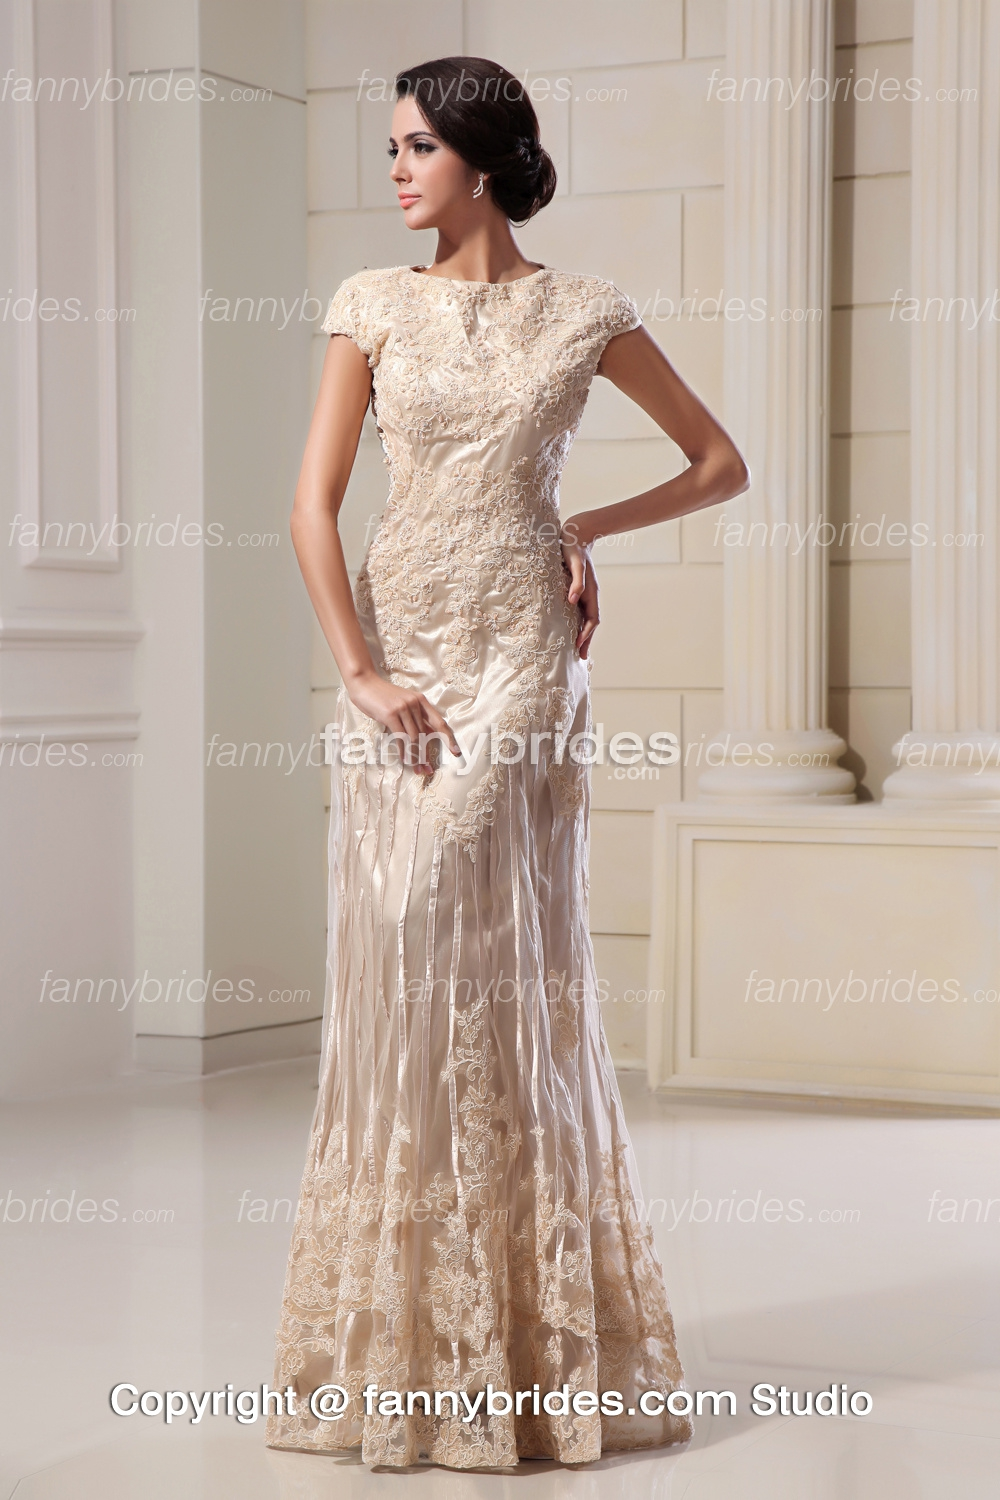 wedding dresses with colored embellishments short ivory wedding dresses Wedding Dresses With Colored Embellishments 85